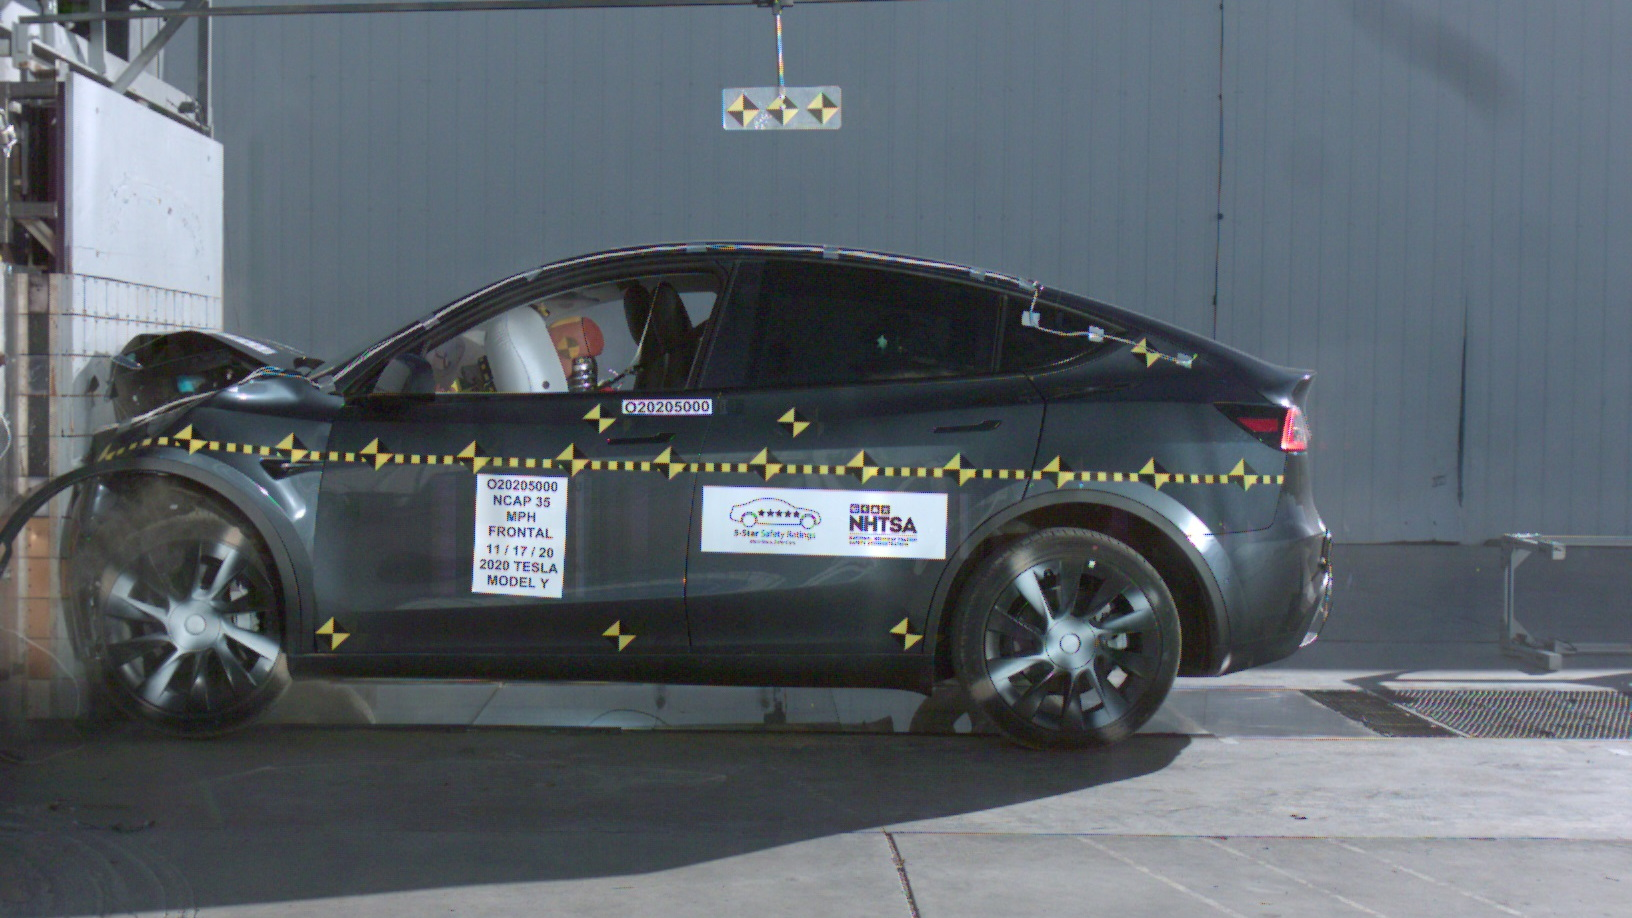 2021 Tesla Model Y  -  U.S. NCAP crash-testing